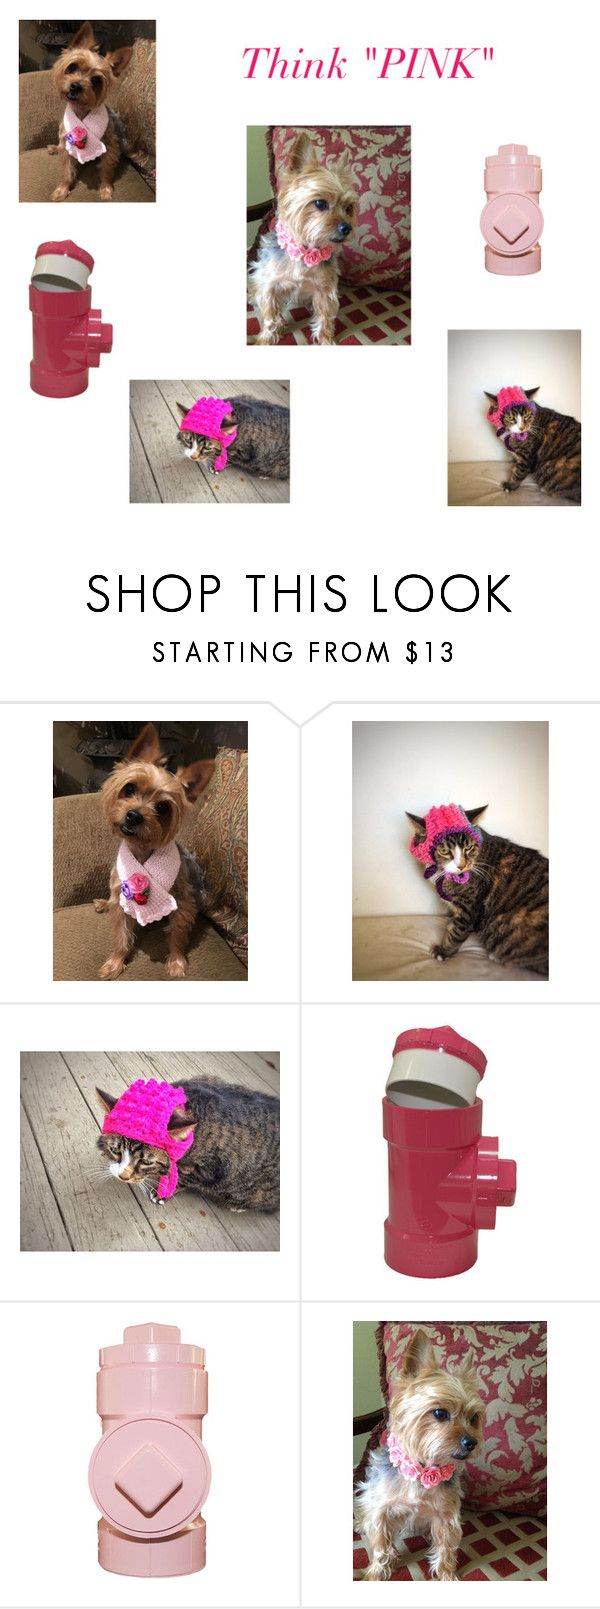 """""""Think """"PINK""""!"""" by artistinjewelry ❤ liked on Polyvore featuring Bebe"""